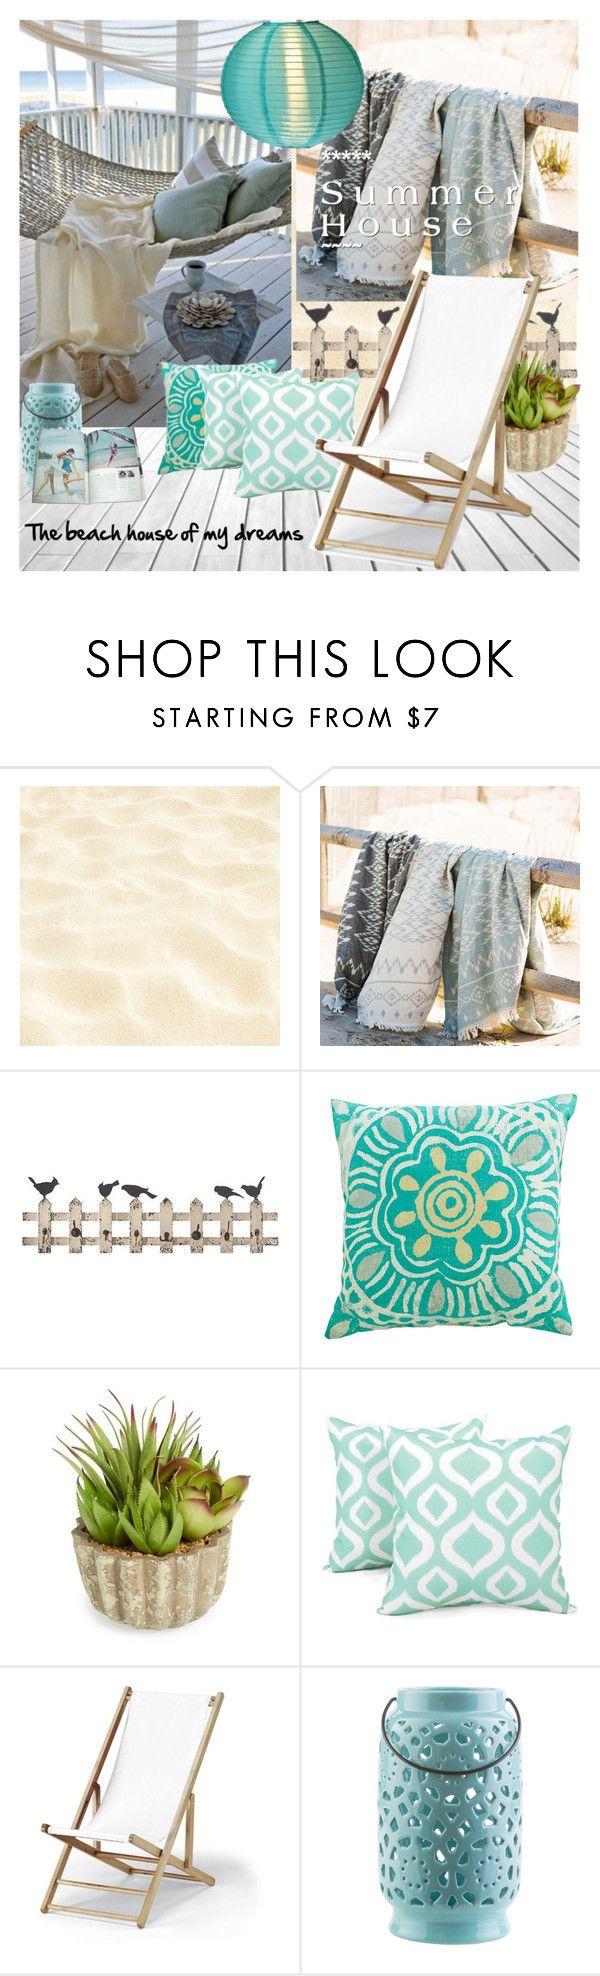 """Summer House"" by nicolevalents ❤ liked on Polyvore featuring interior, interiors, interior design, home, home decor, interior decorating, Home Decorators Collection, Allstate Floral, Arlee Home Fashions and Telescope Casual"